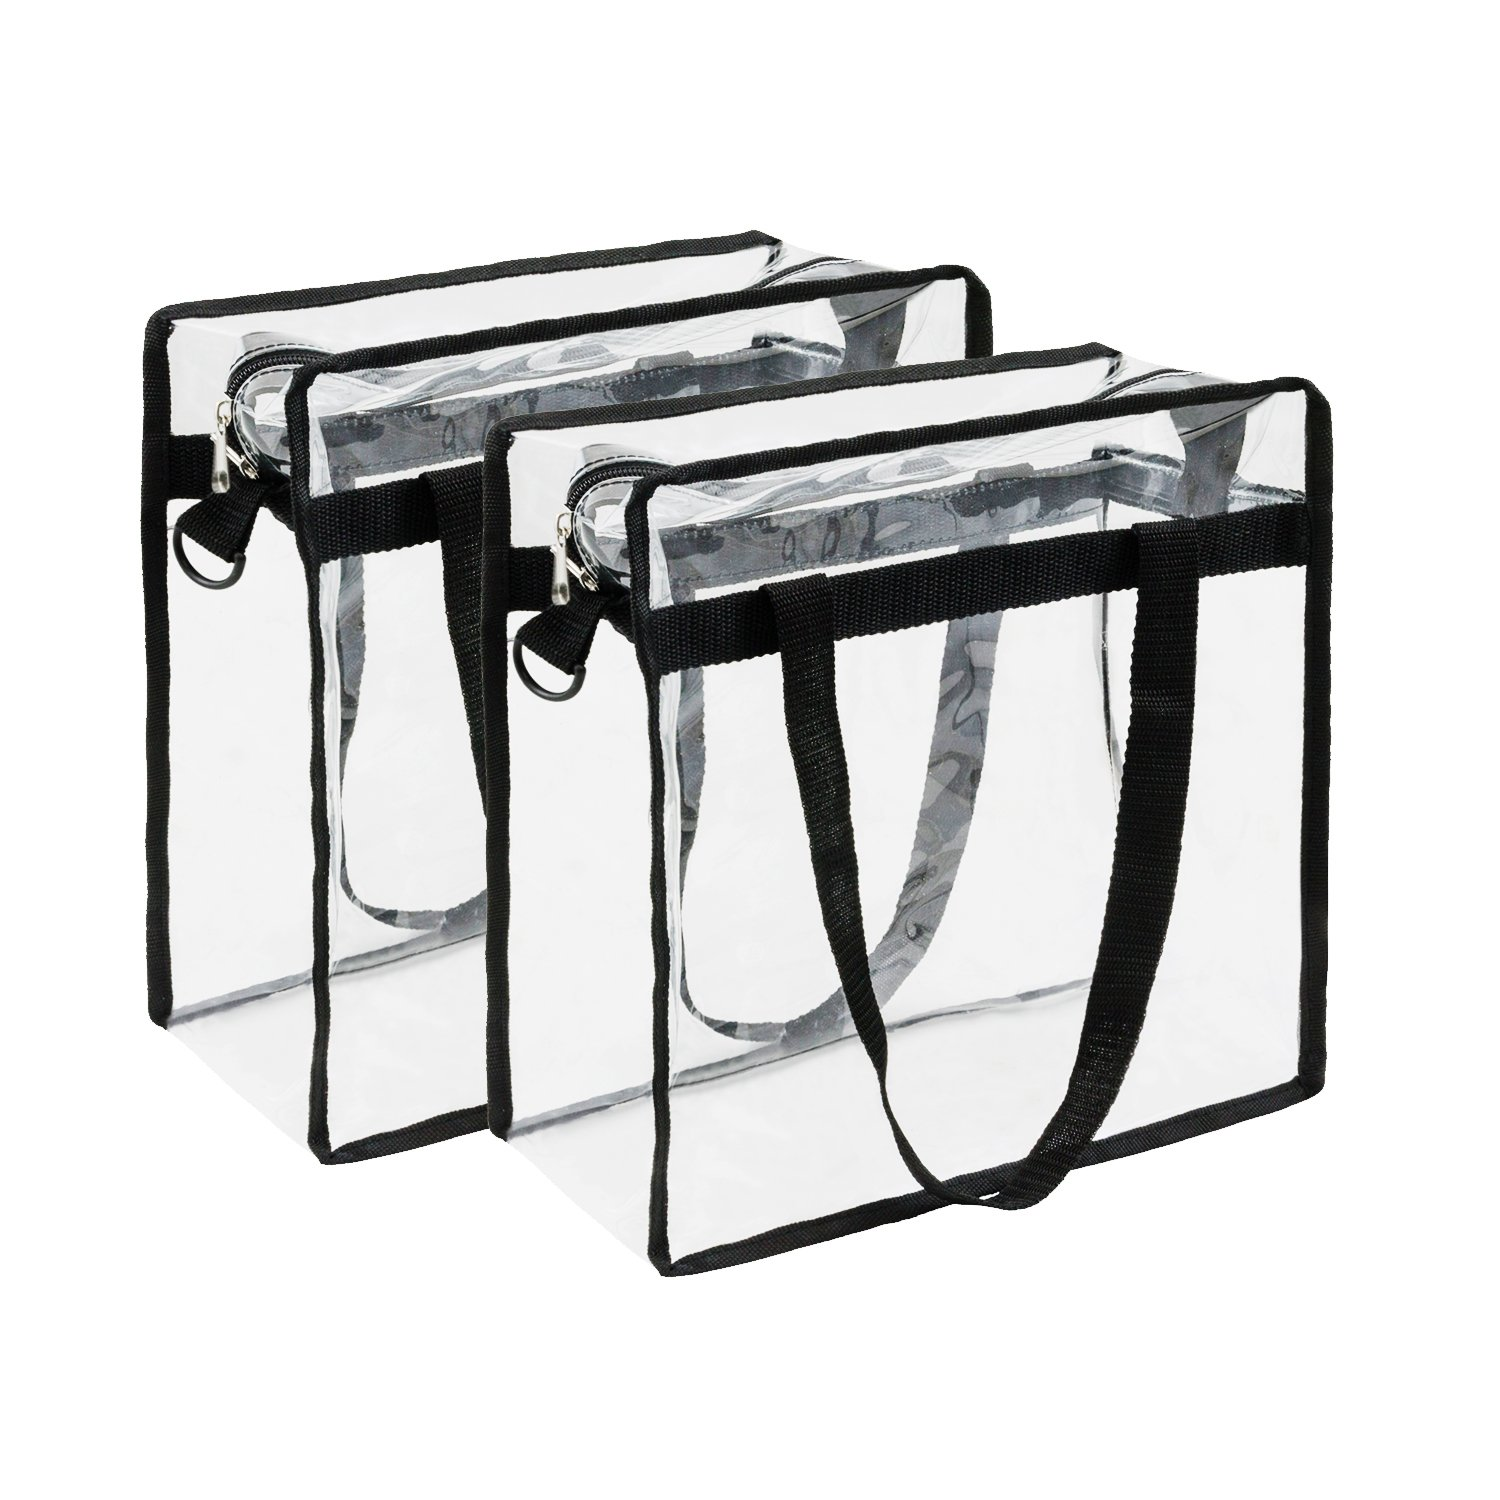 Housebles Stadium Tote Bag, Clear PVC Vinyl Bags, 12x12x6, 2 Pack, Clear, Plastic, Heavy Duty Transparent Handbag, Zipper Totes, NFL Approved Gear, For Game, Gym, Work, Lunch